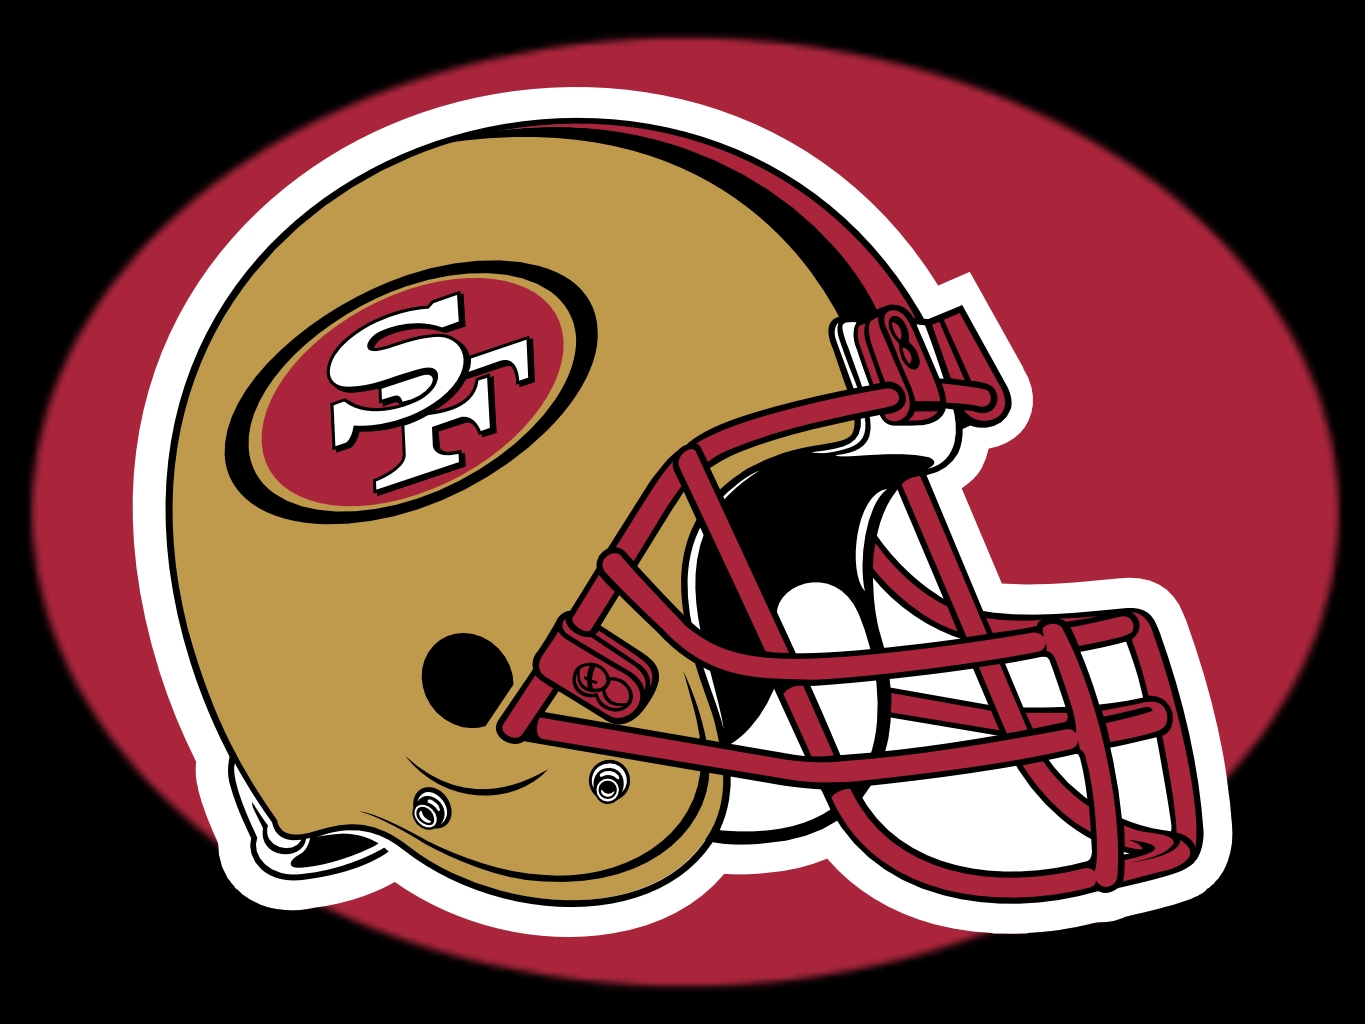 Free 49Ers Cliparts, Download Free Clip Art, Free Clip Art on.